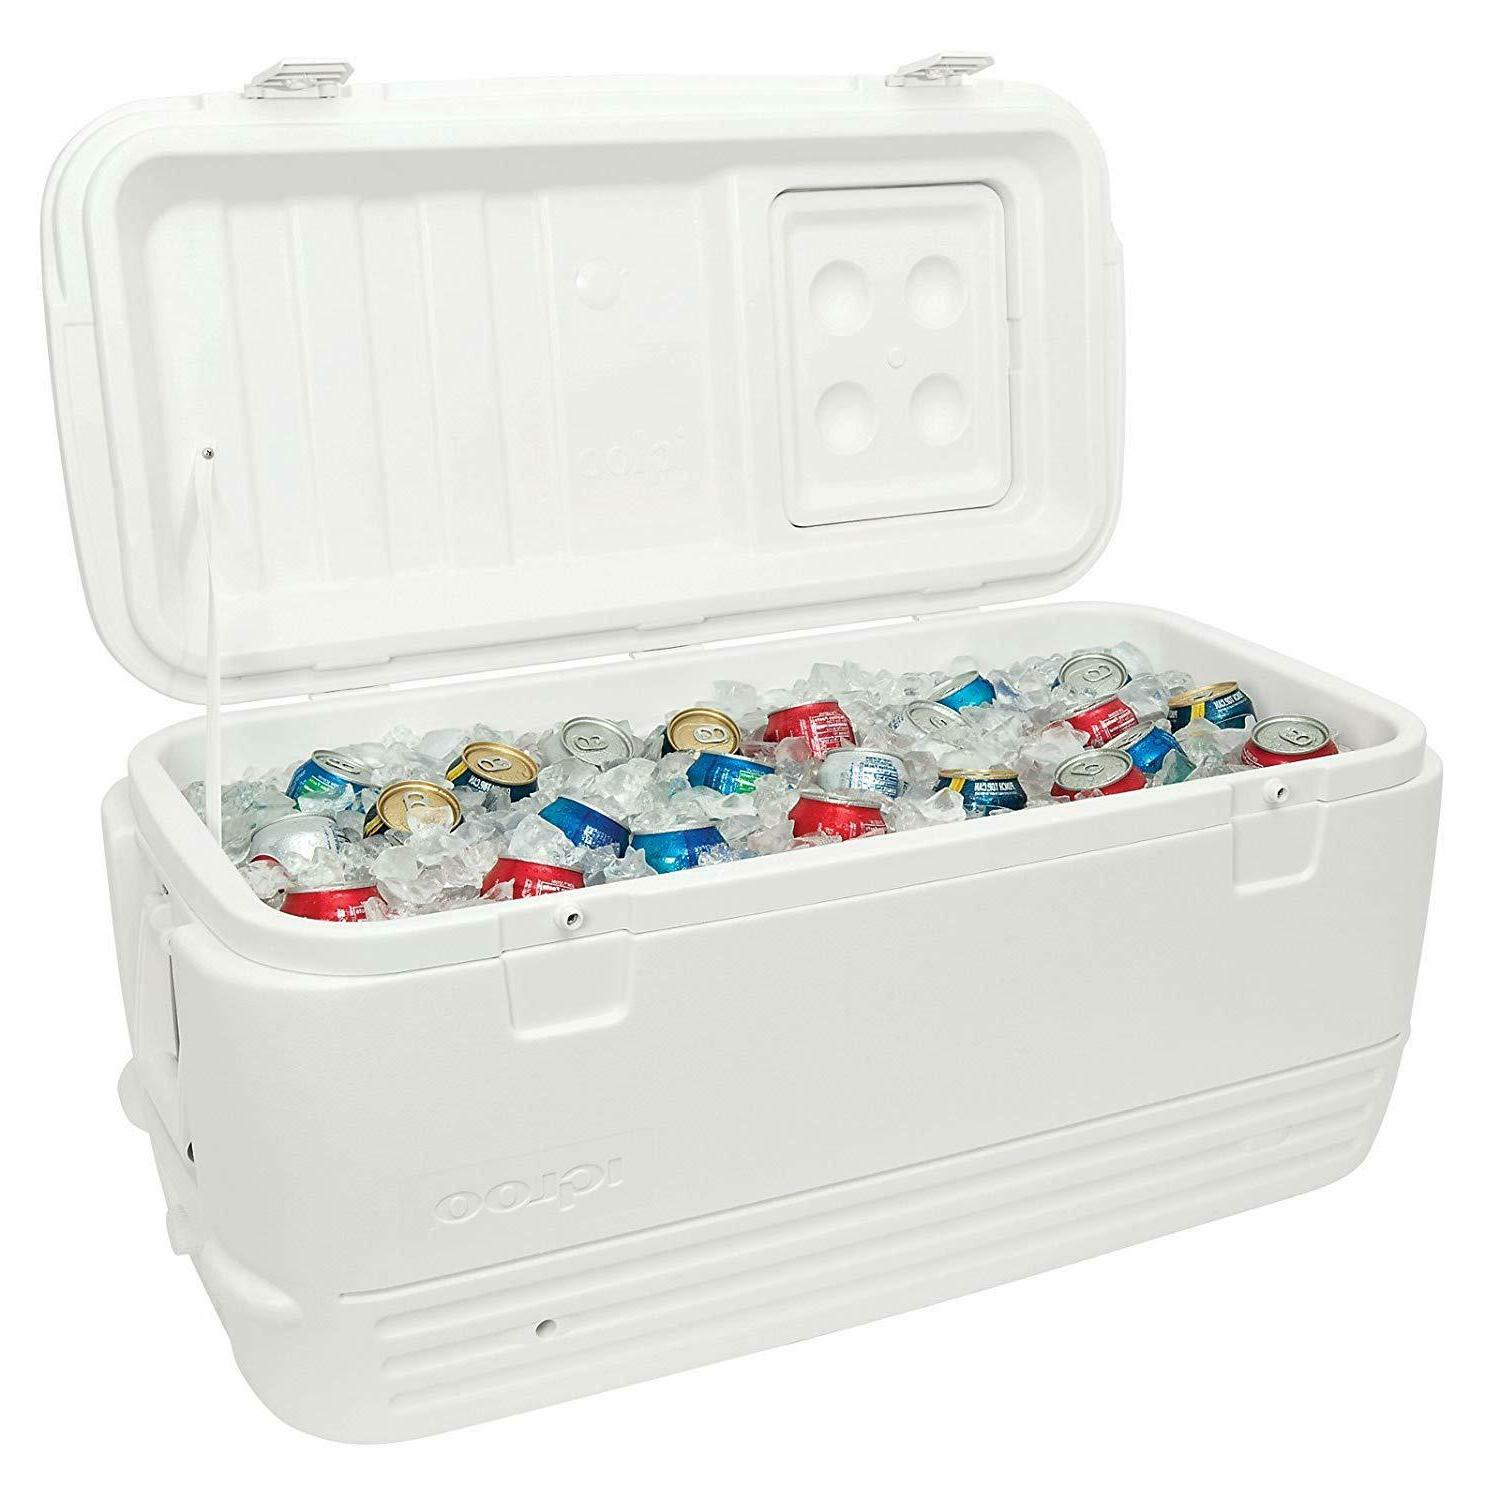 Quick 100 Cooler Chest Marine Camping Equipment